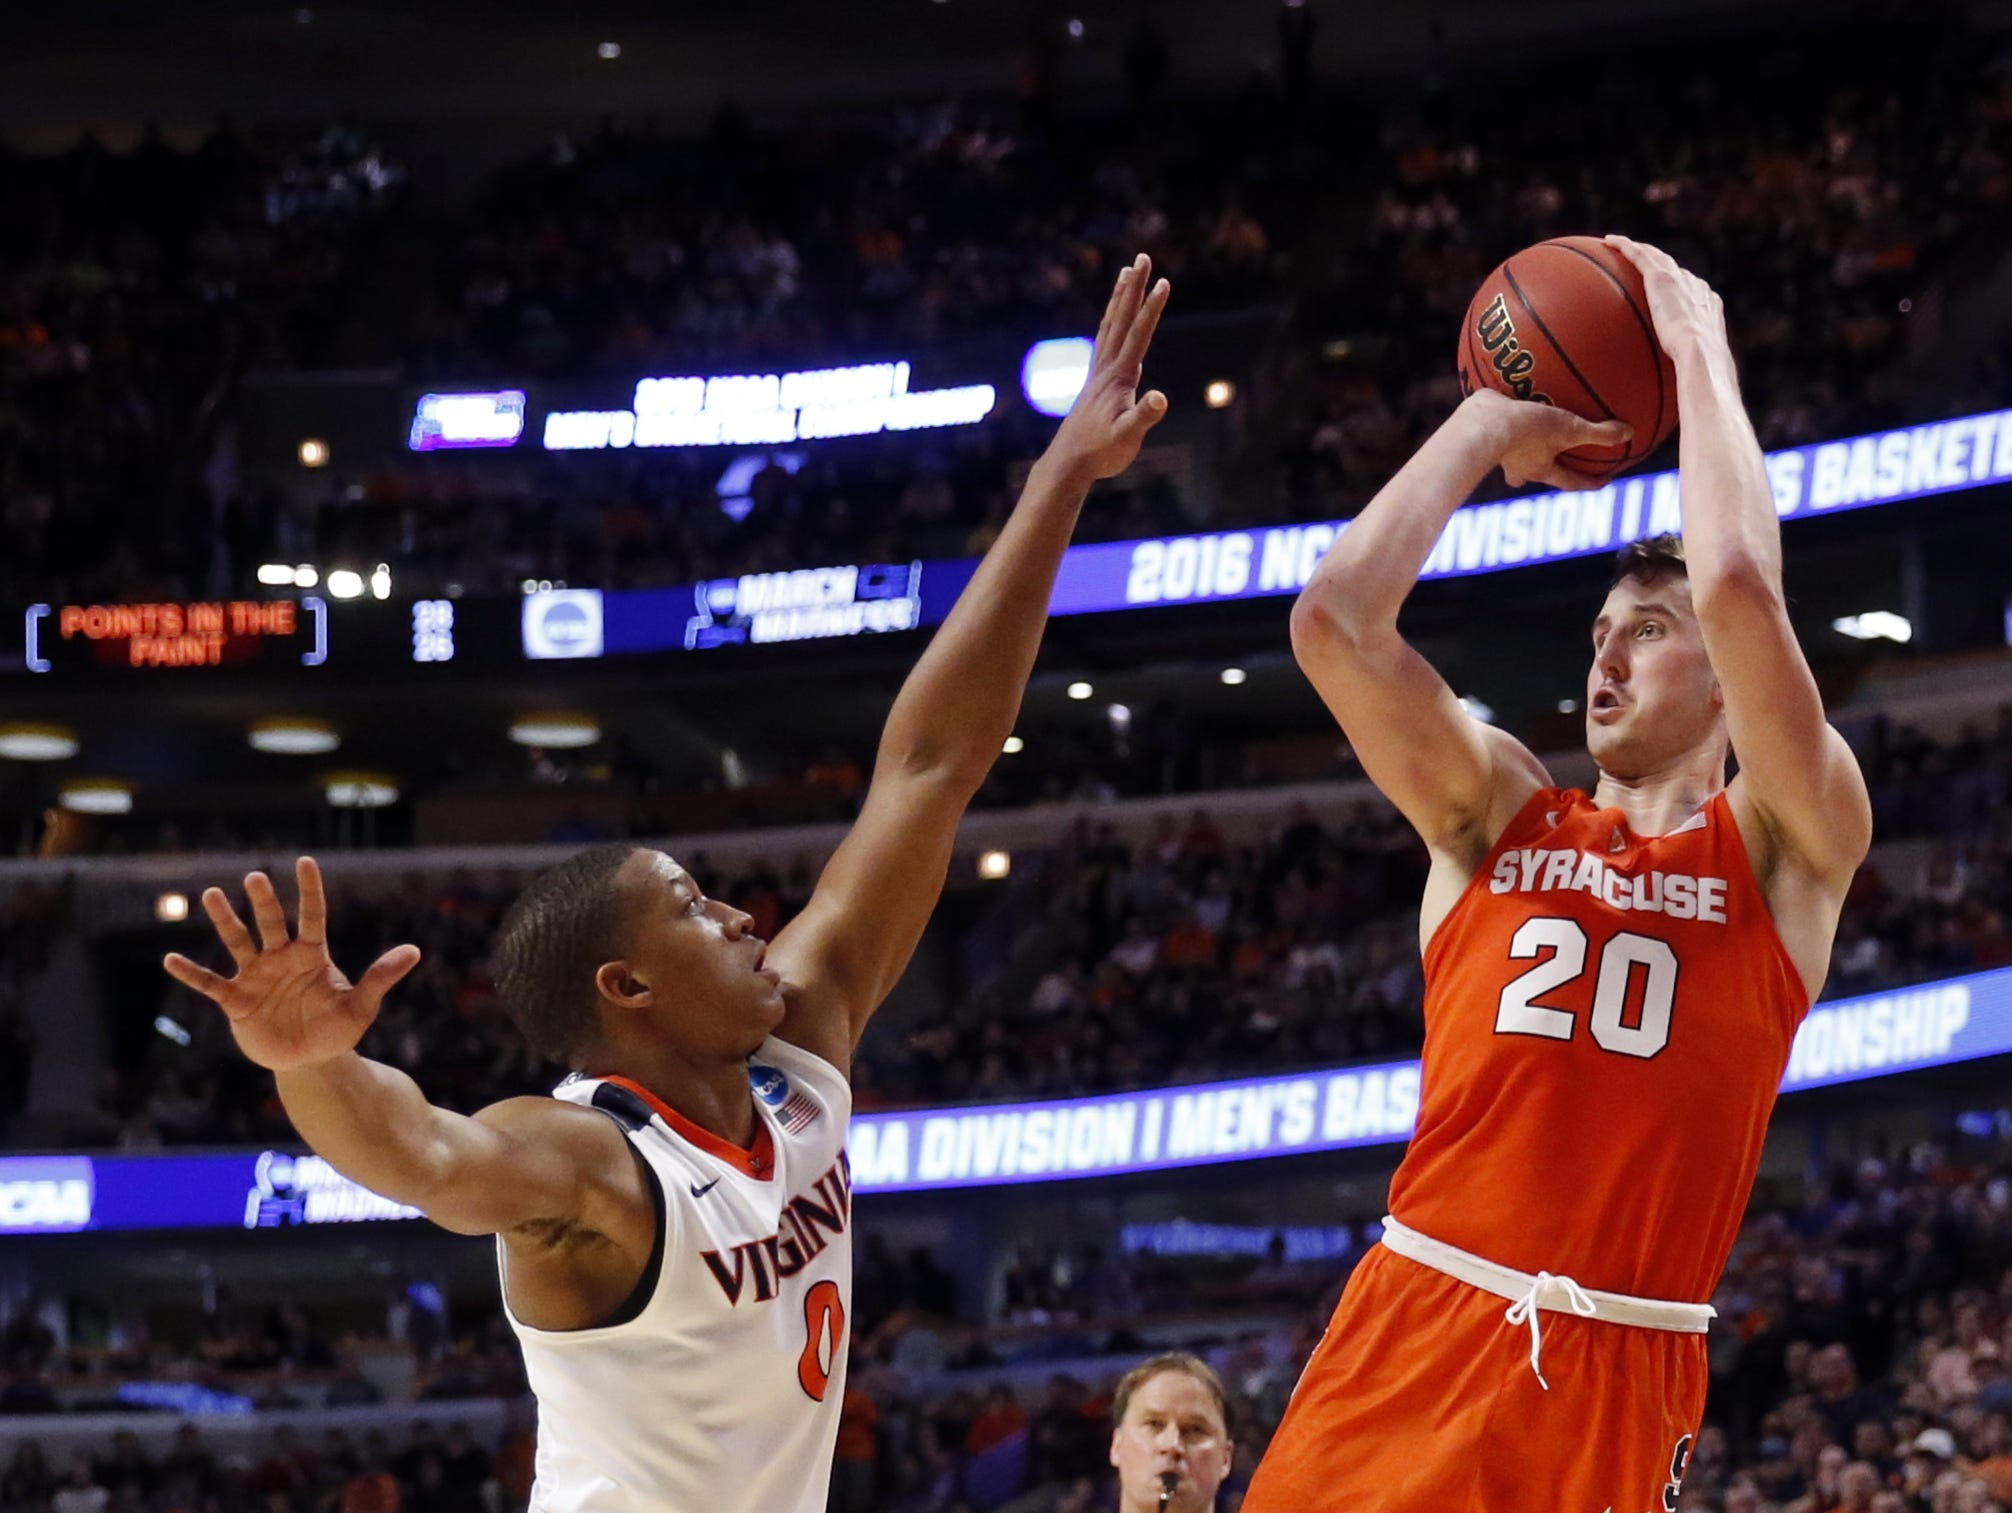 Syracuse's Tyler Lydon, an Elizaville native, shoots over Virginia's Devon Hall during the NCAA tournament Midwest regional final on Sunday in Chicago.